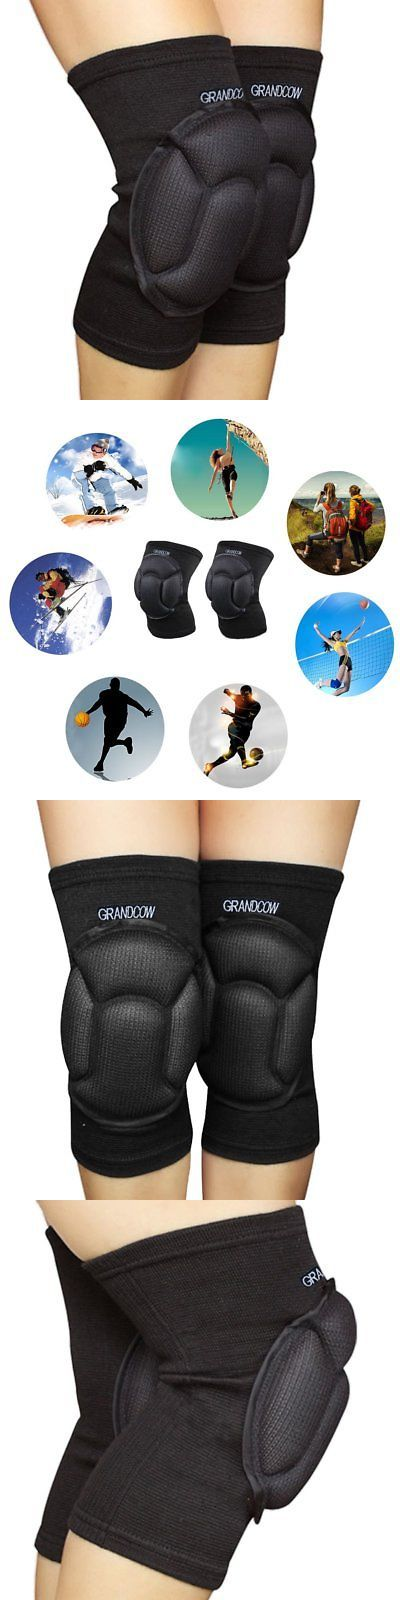 Elbow and Knee Pads 159065: Knee Pads Volleyball Work Construction Gardening Cleaning Dance Bike Mtb Protect -> BUY IT NOW ONLY: $32.85 on eBay!